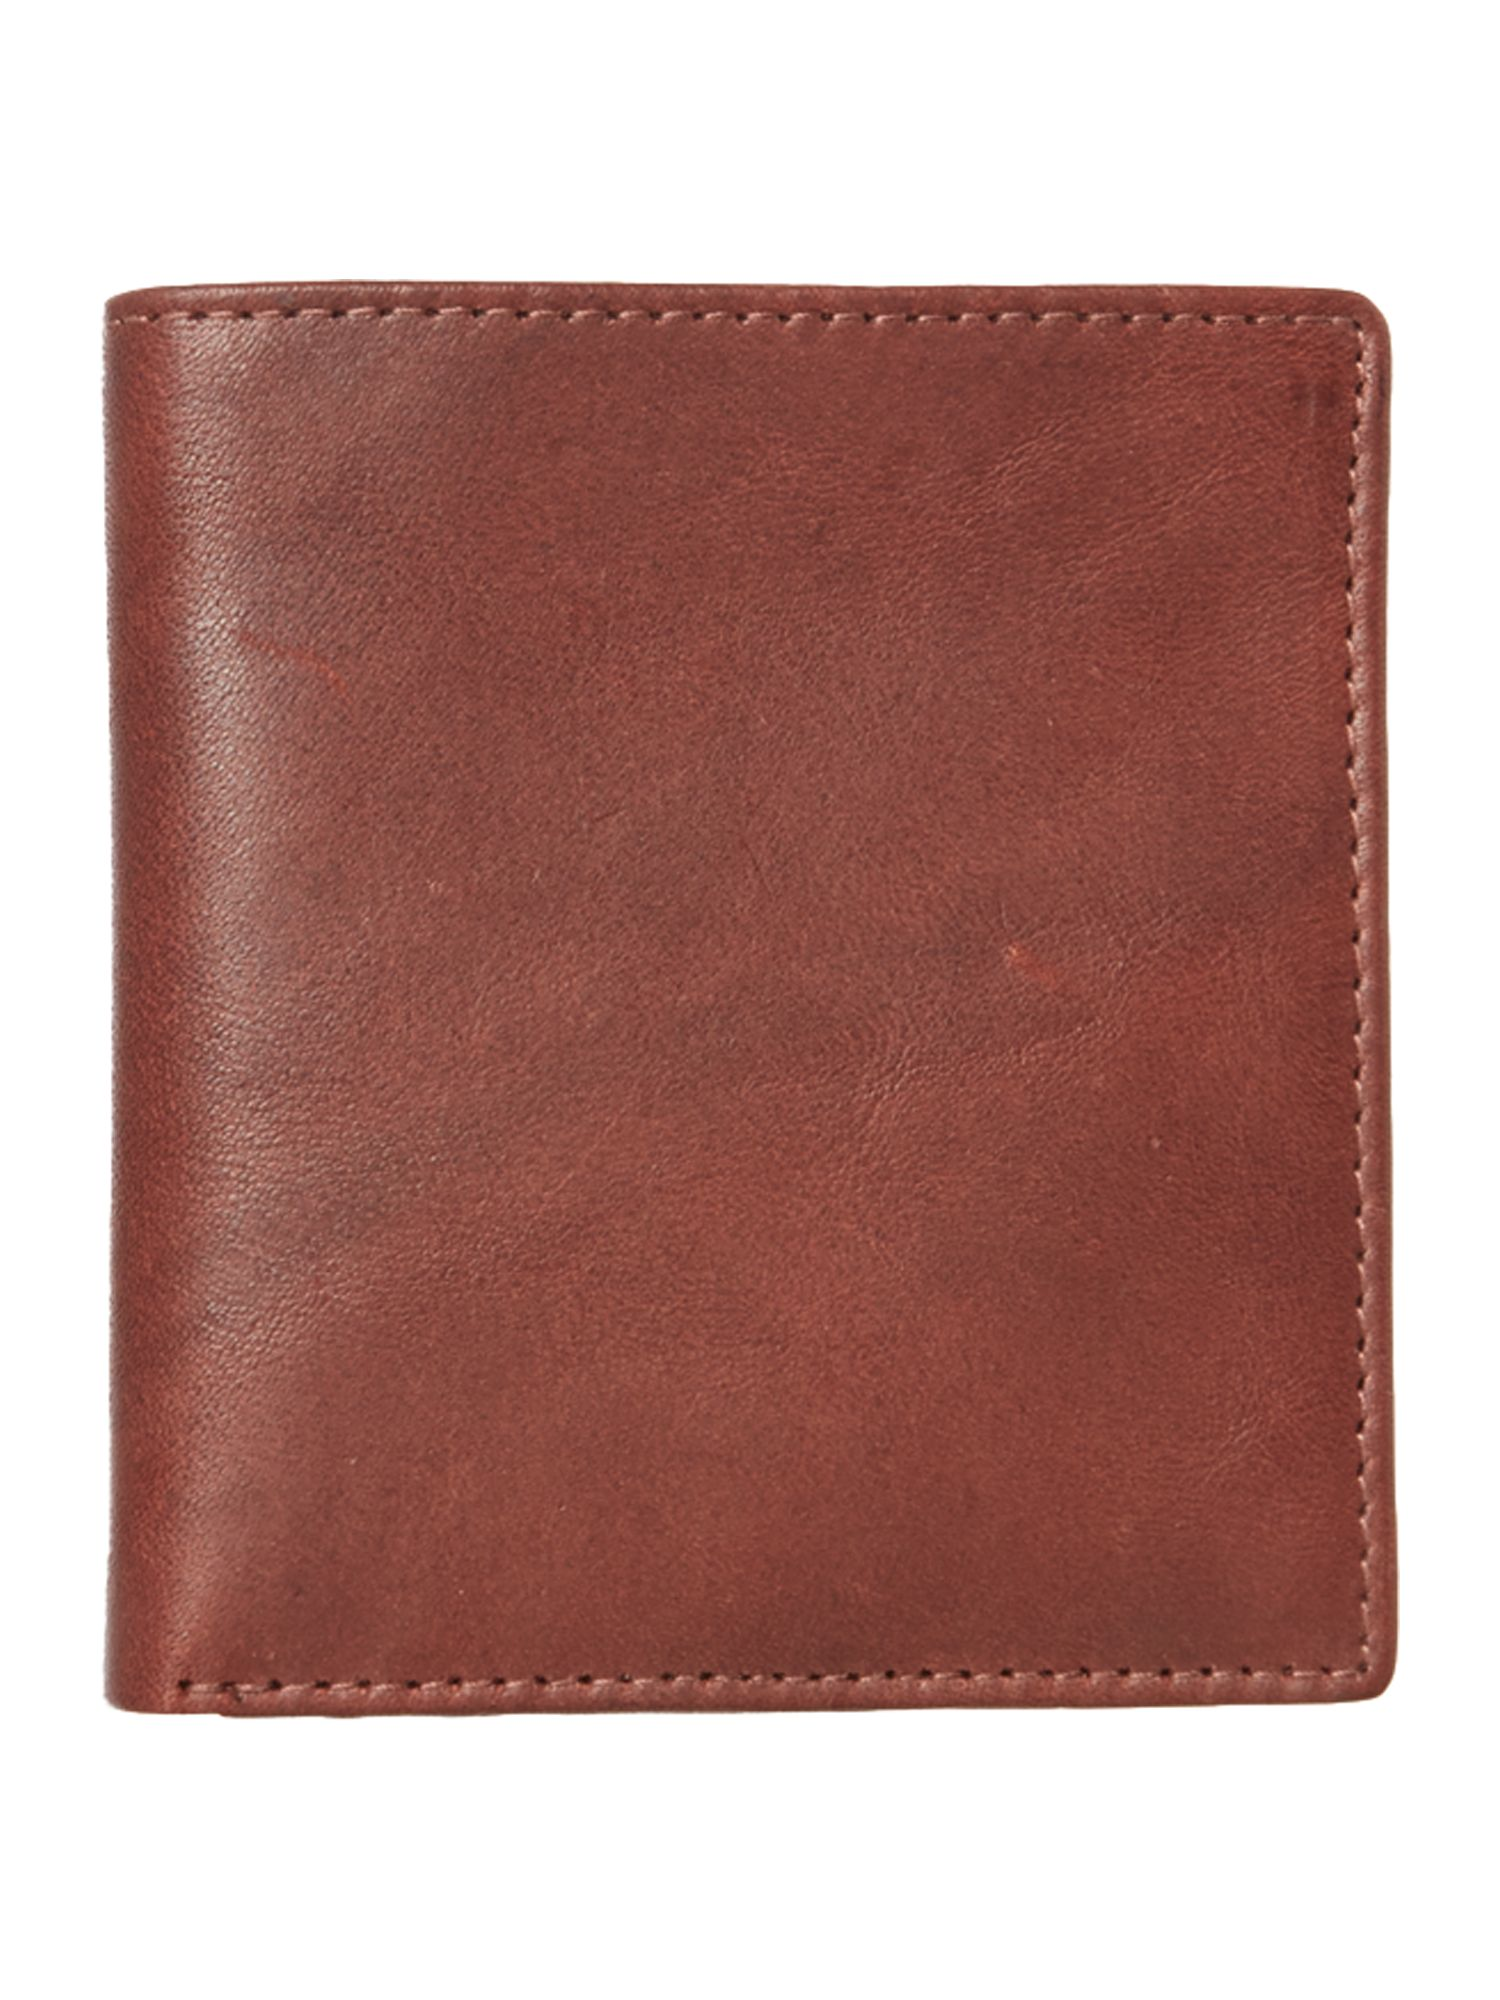 Italian leather bifold wallet